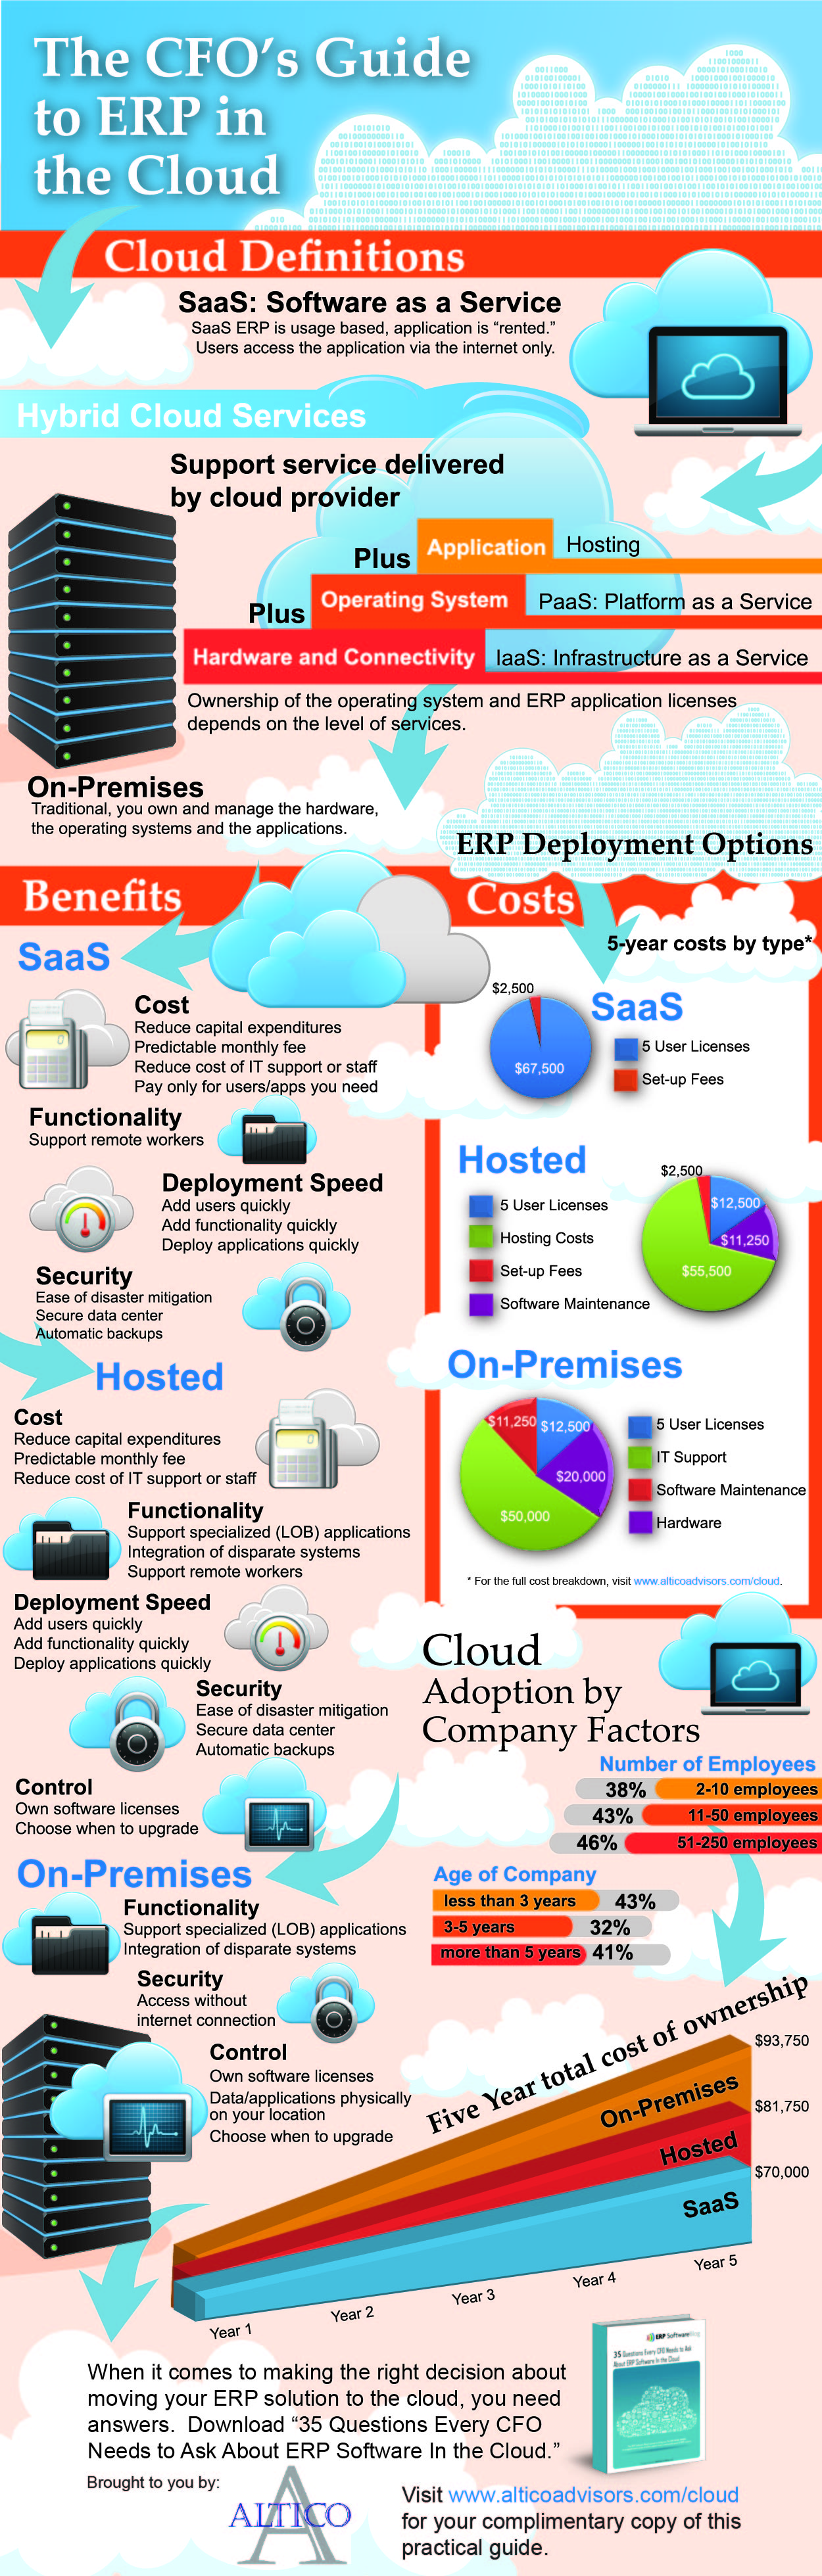 This Cool New Infographic Visually Displays The CostBenefit